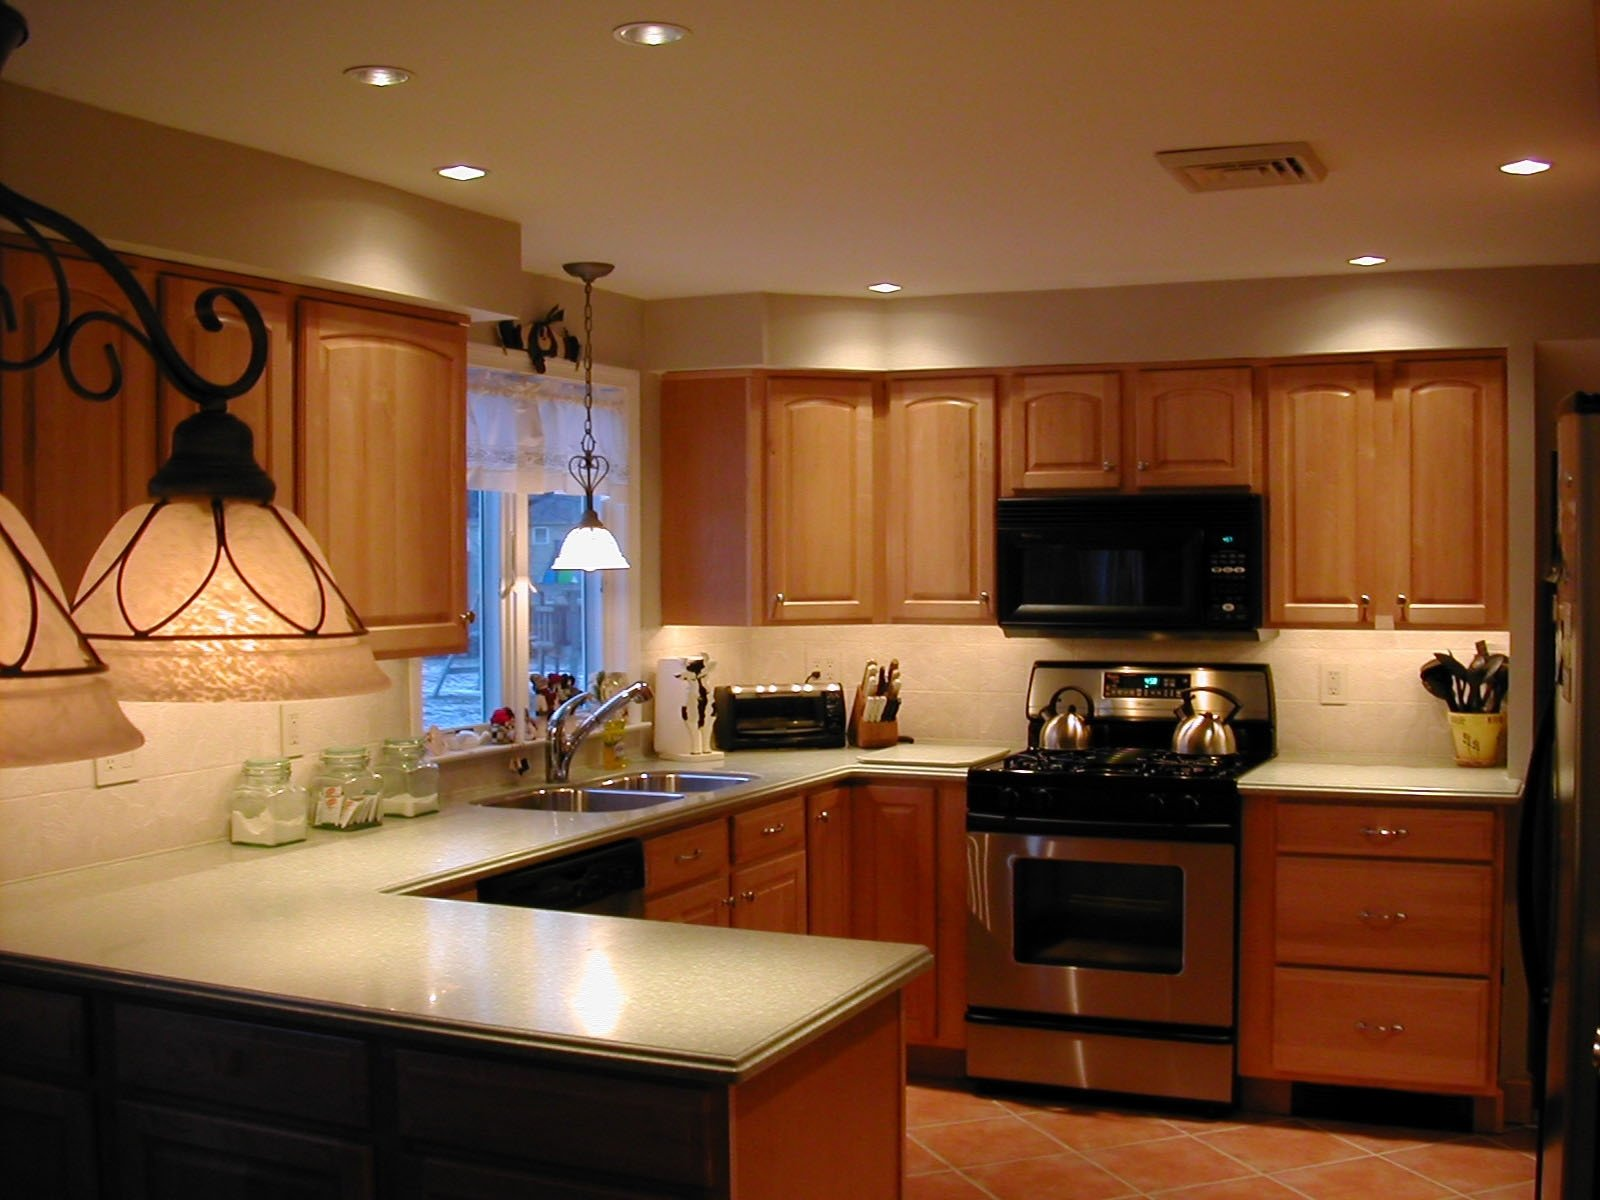 kitchen lighting ideas small light in pictures if kitchens cabinet